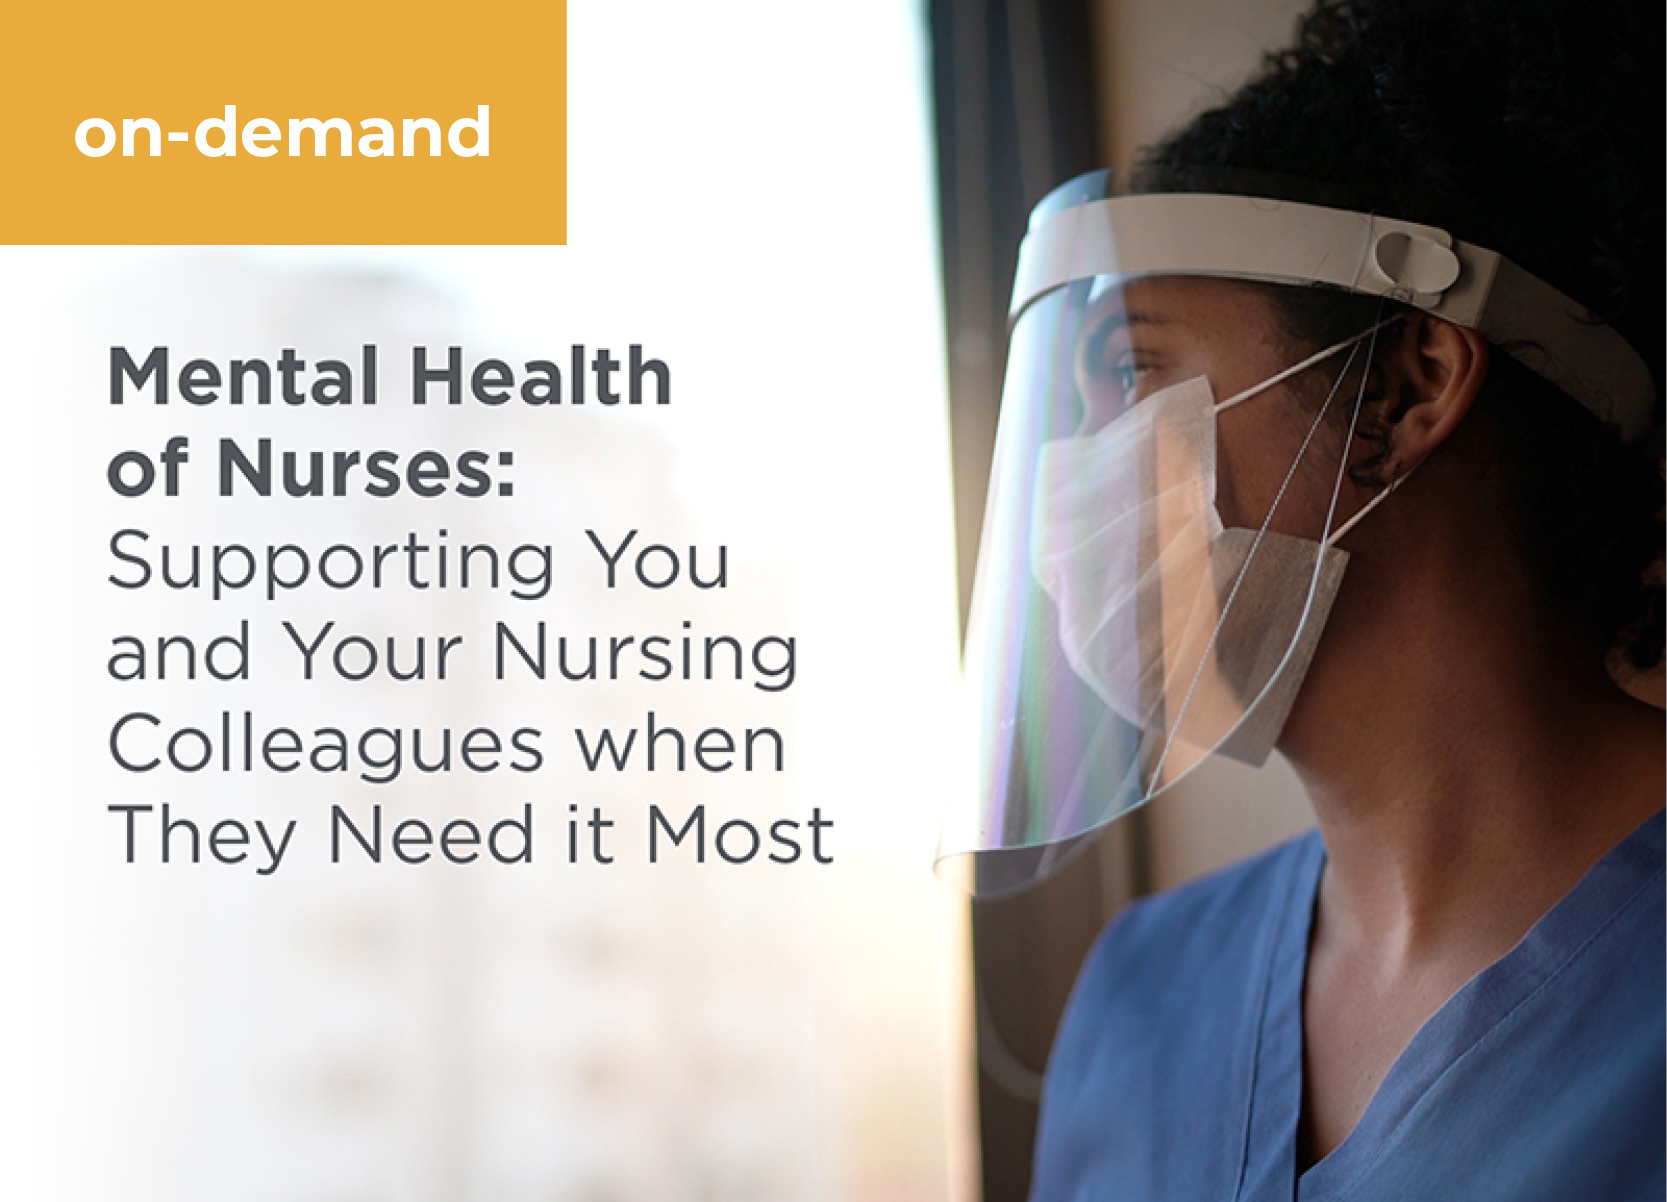 Mental Health of Nurses: Supporting You and Your Nursing Colleagues when They Need it Most